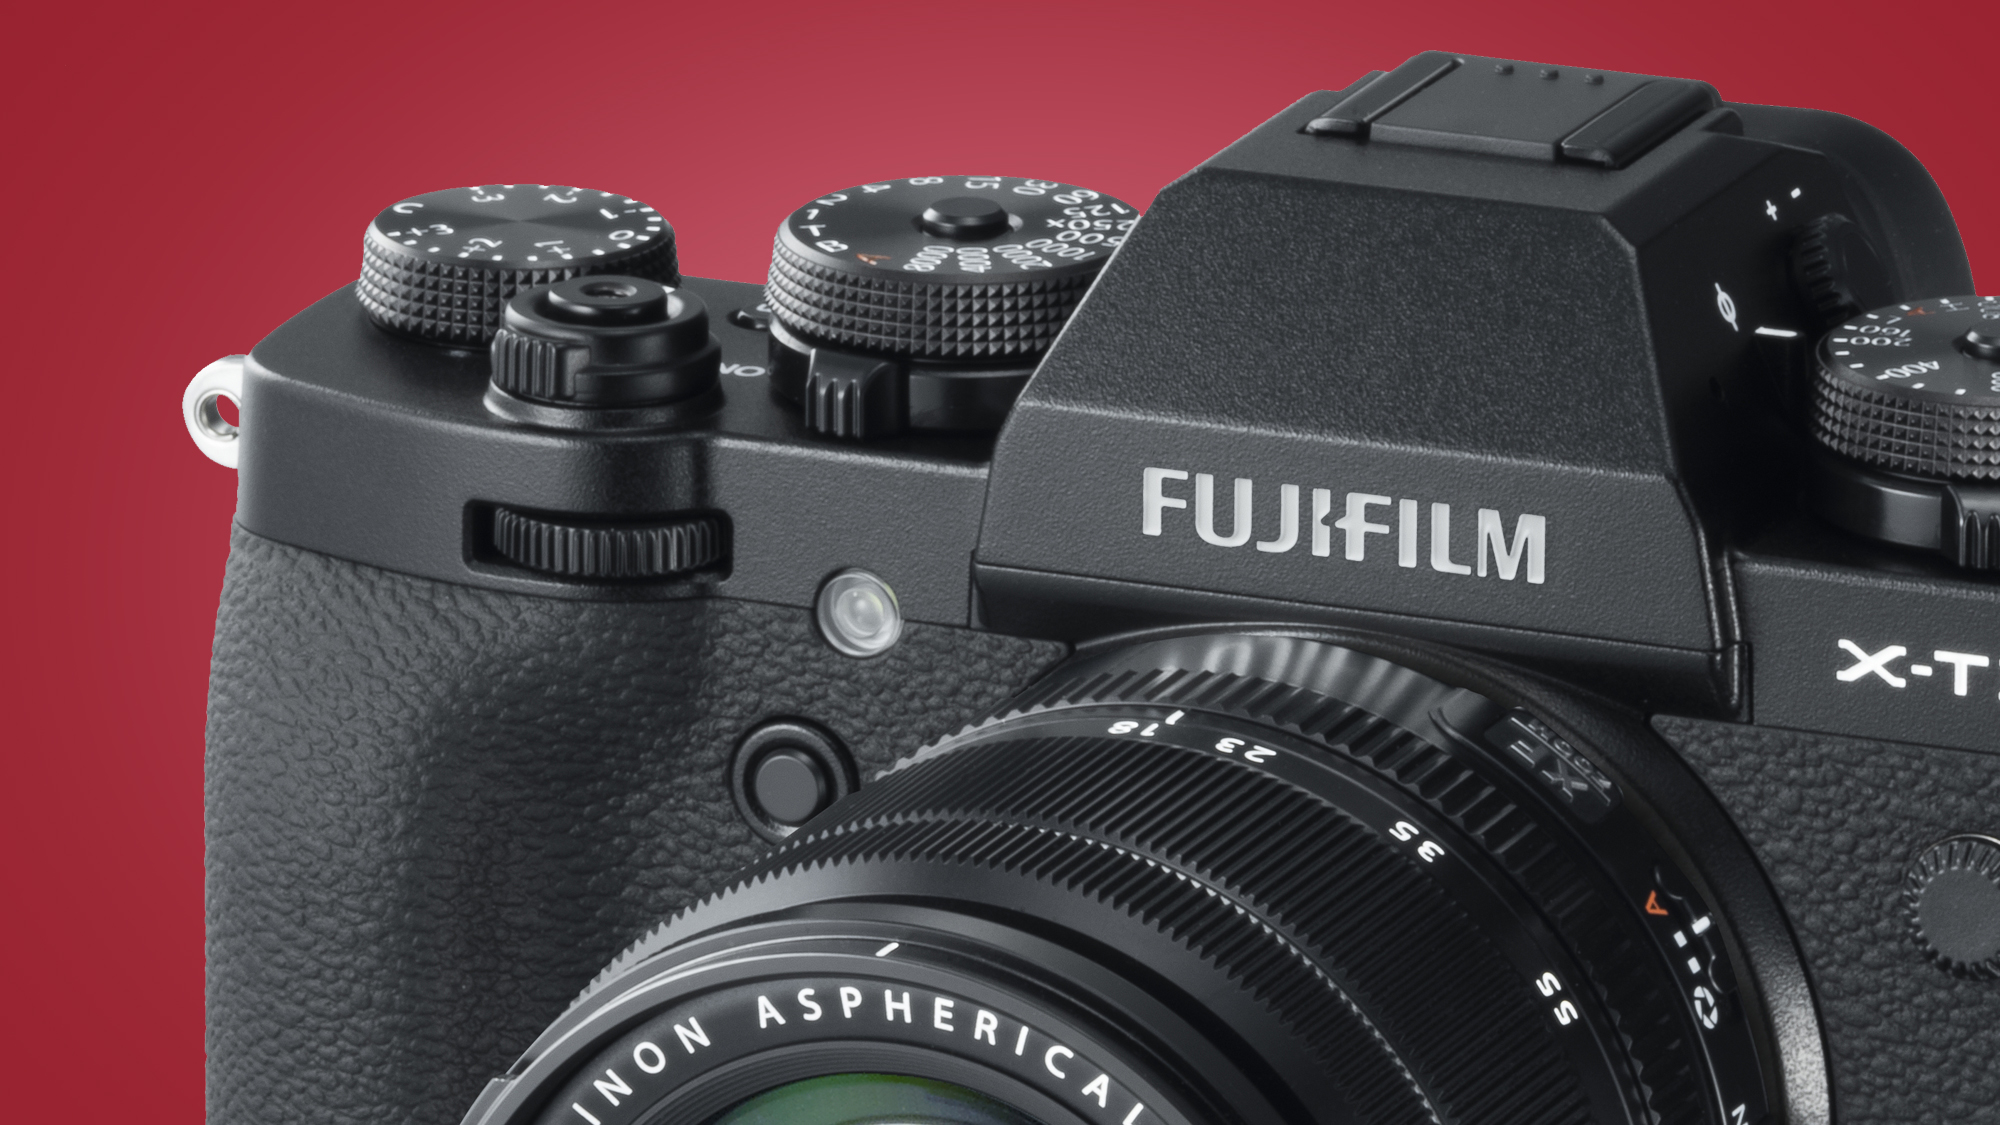 The Fujifilm X-T4's leaked price suggests it'll cost more than the Sony A6600